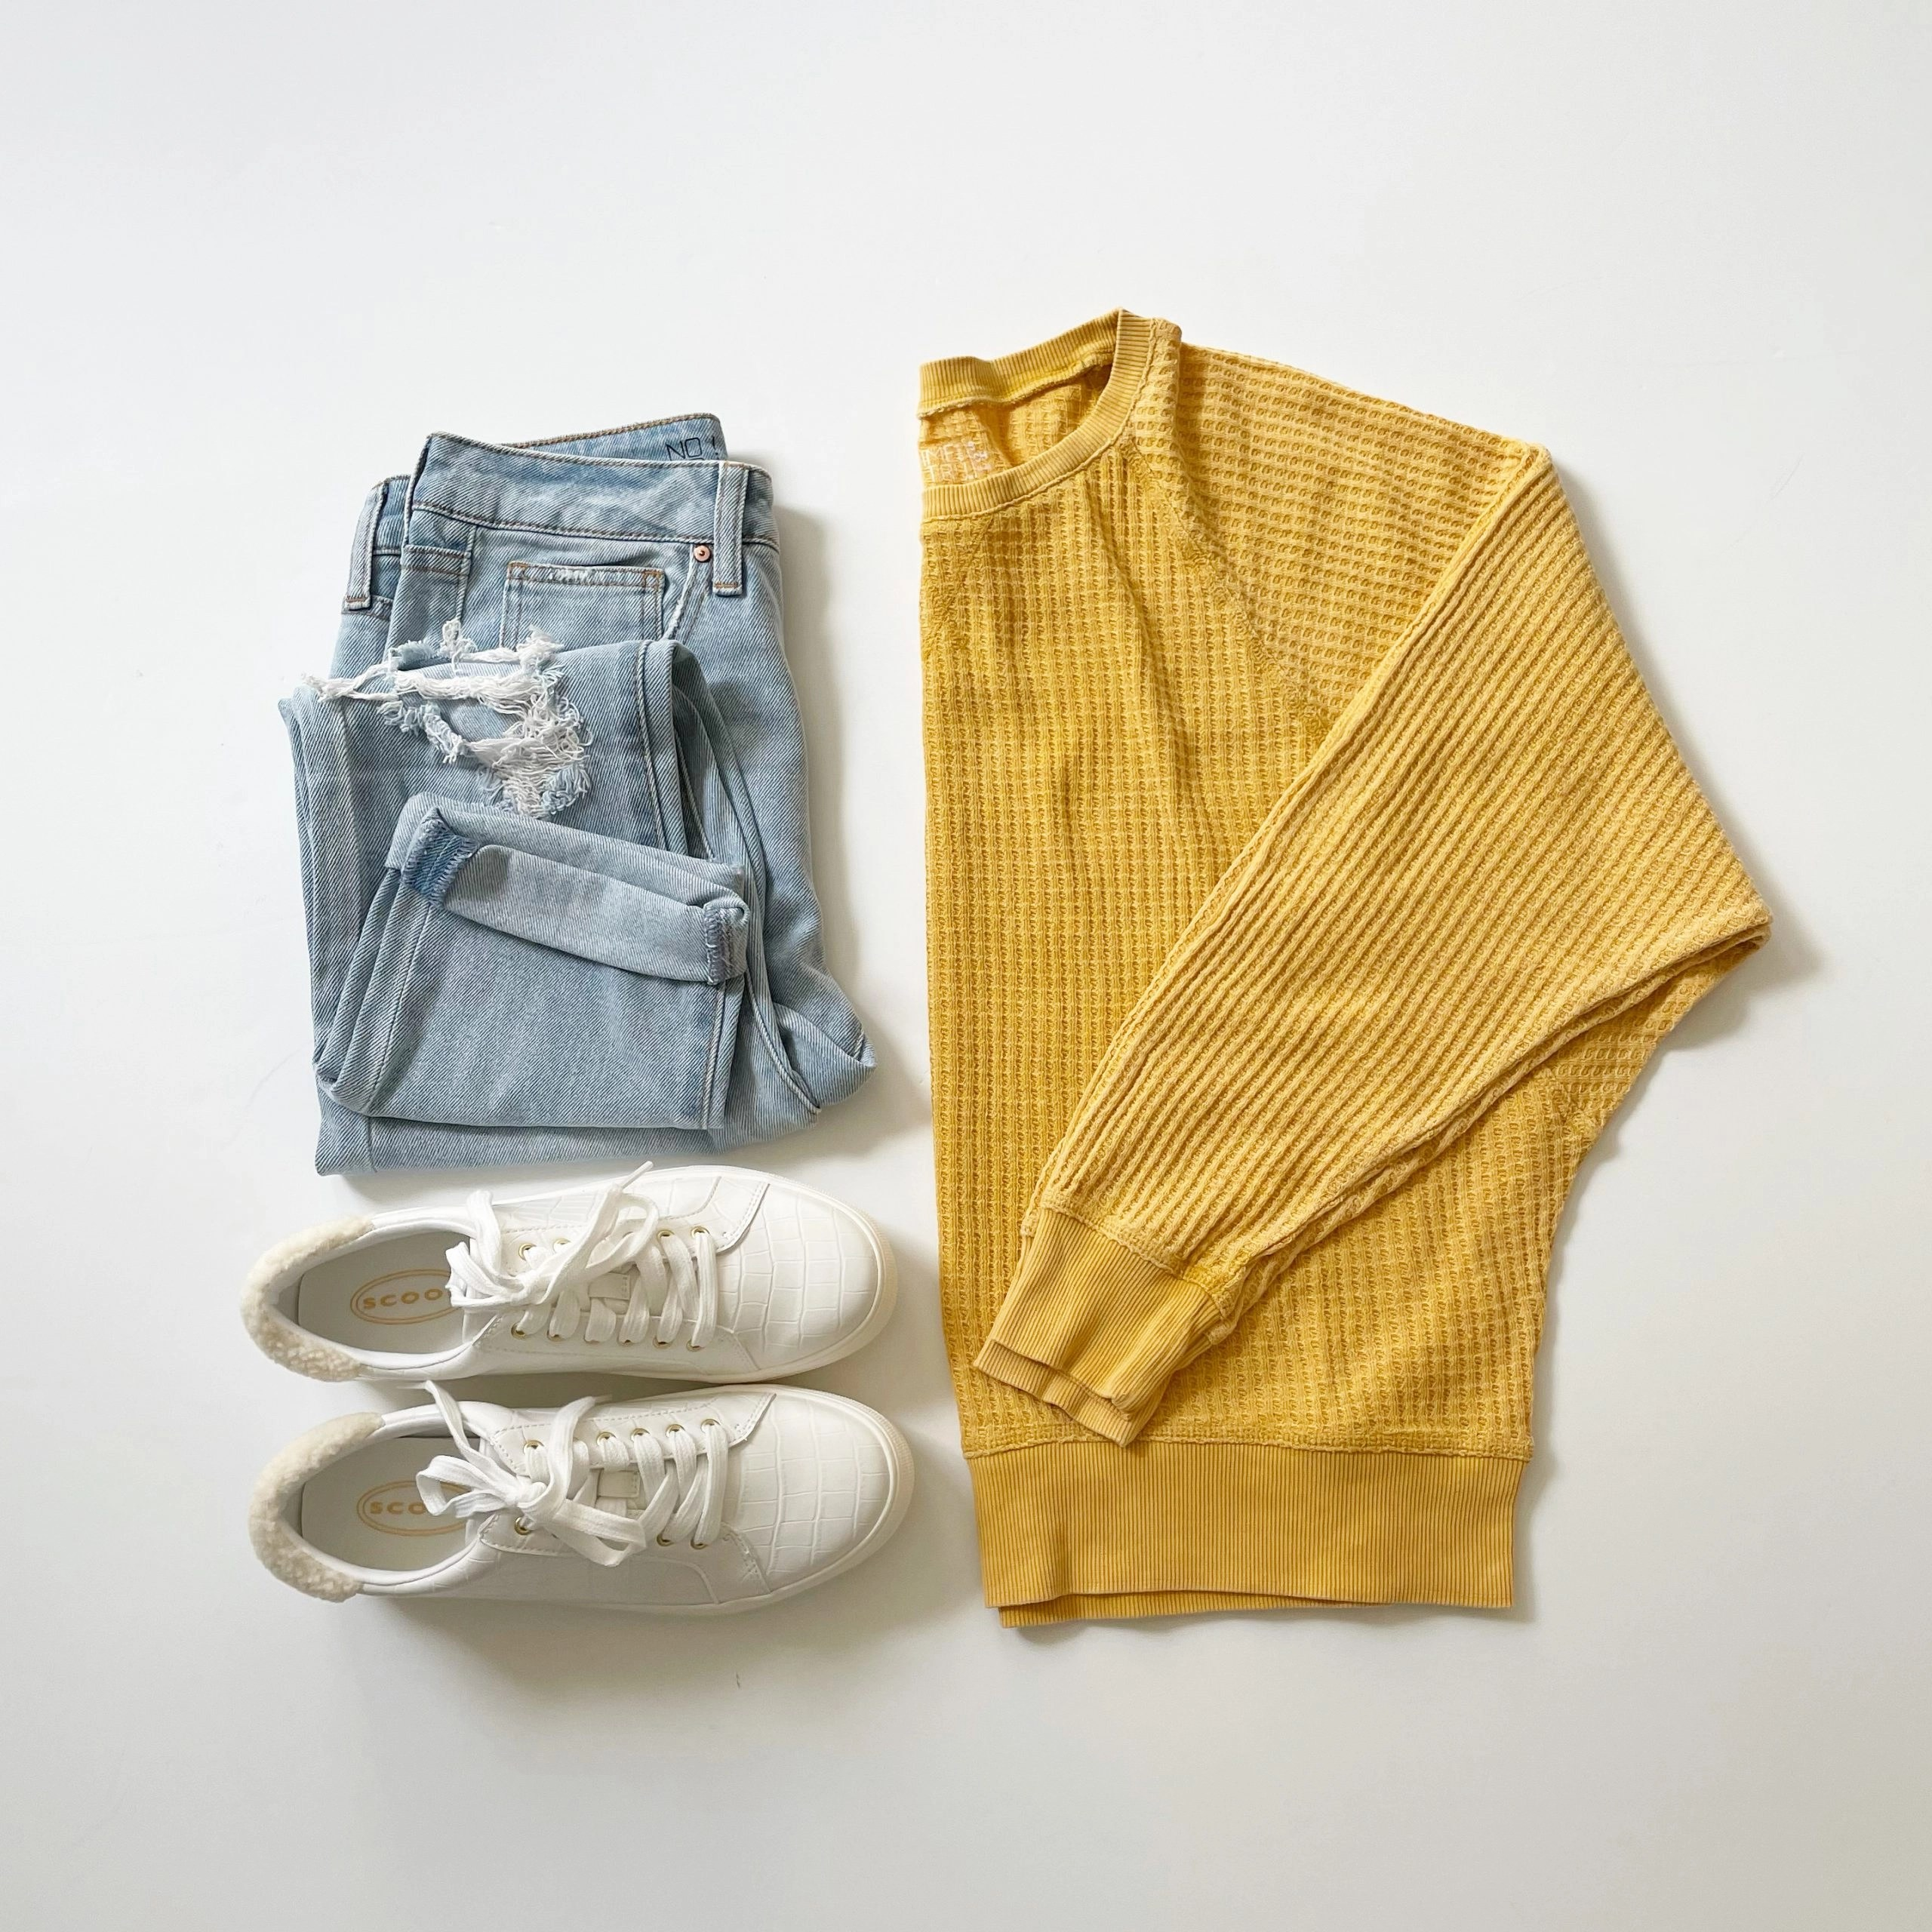 Time and Tru Waffle Knit Pullover, No Boundaries Girlfriend Jeans and Scoop Faux Croc Sneakers